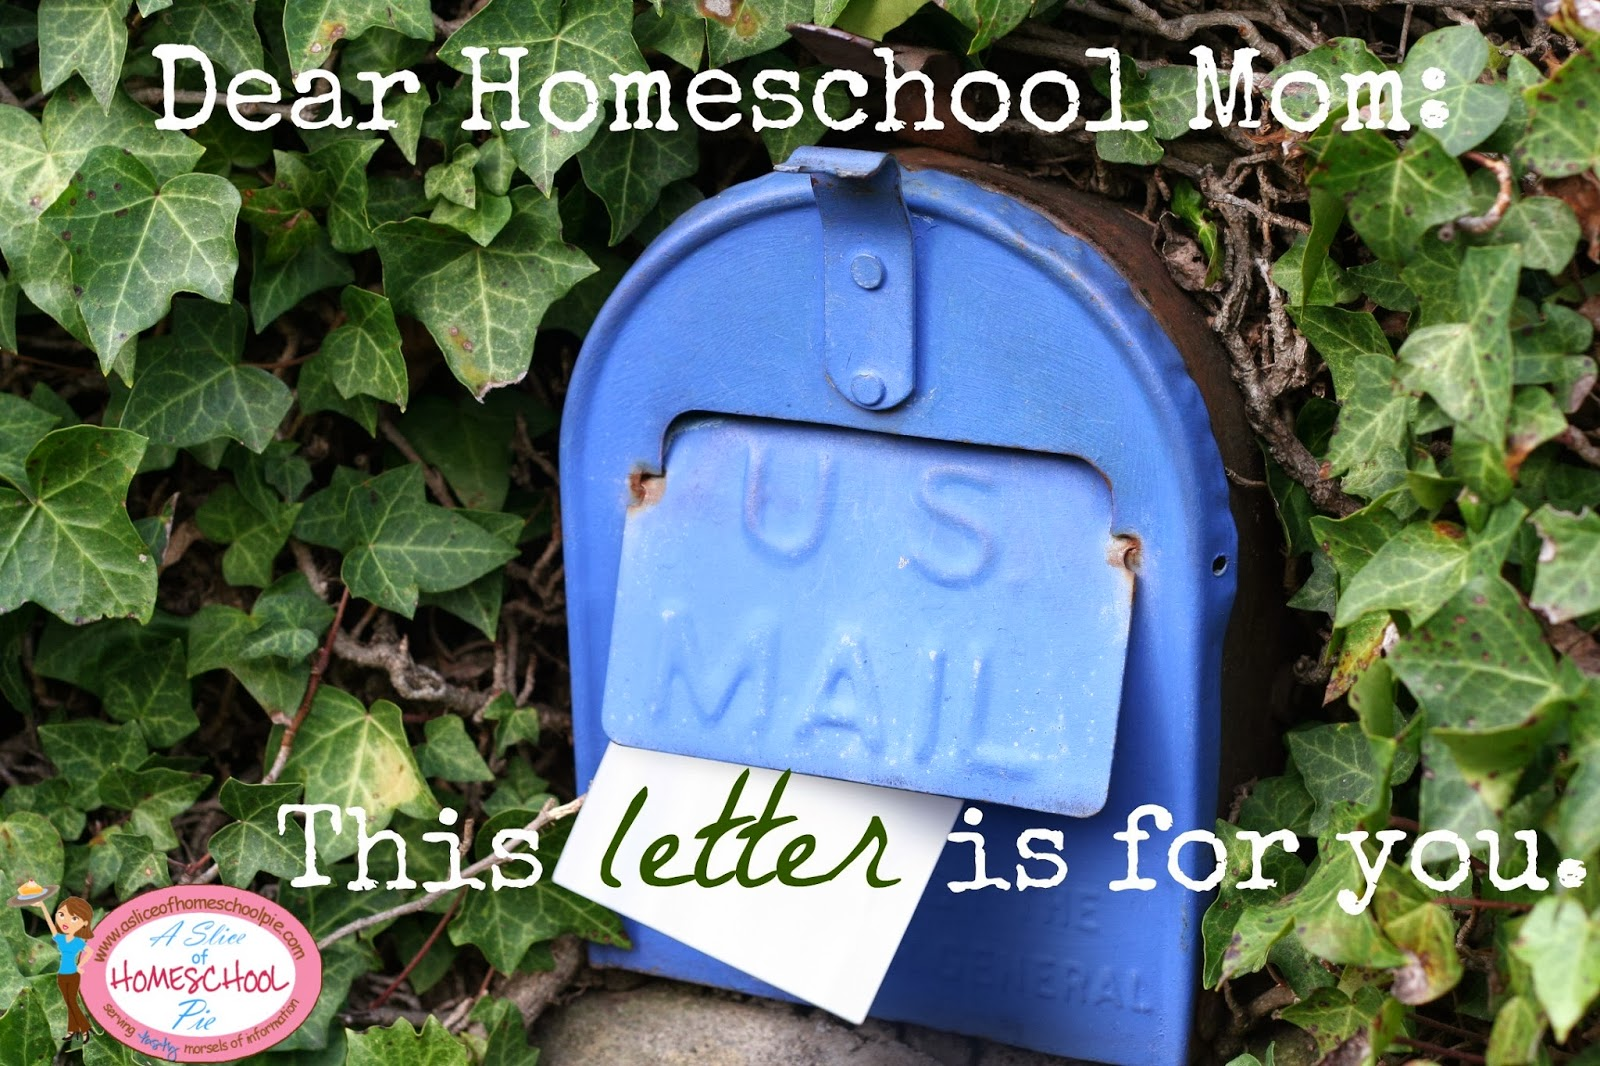 A letter to a homeschool mom by ASliceOfHomeschoolPie.com @homeschool @encouragement